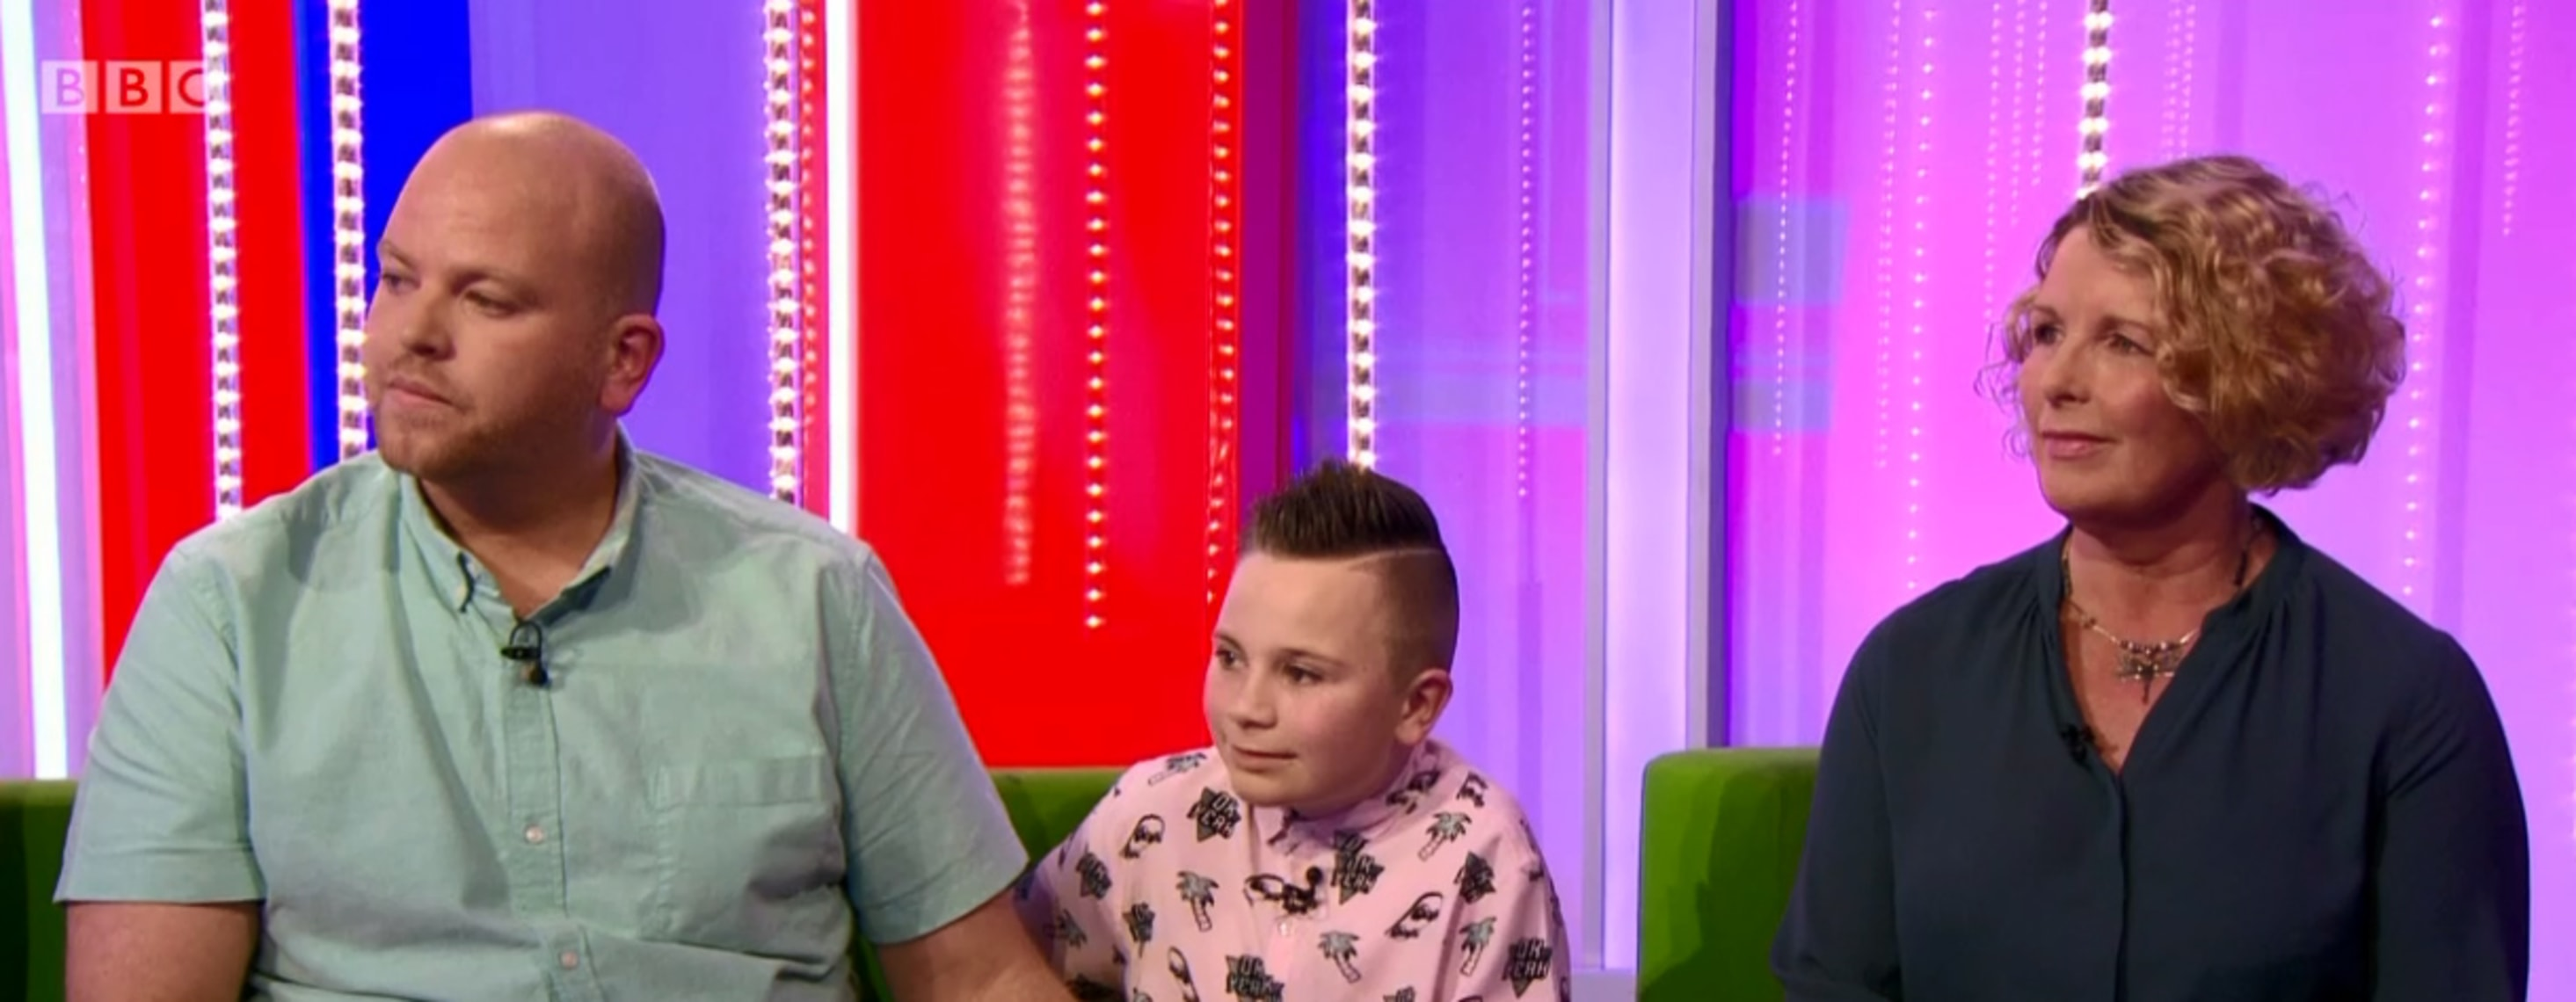 Adoption UK's chief executive on the BBC's The One Show discussing adopting children with disabilities